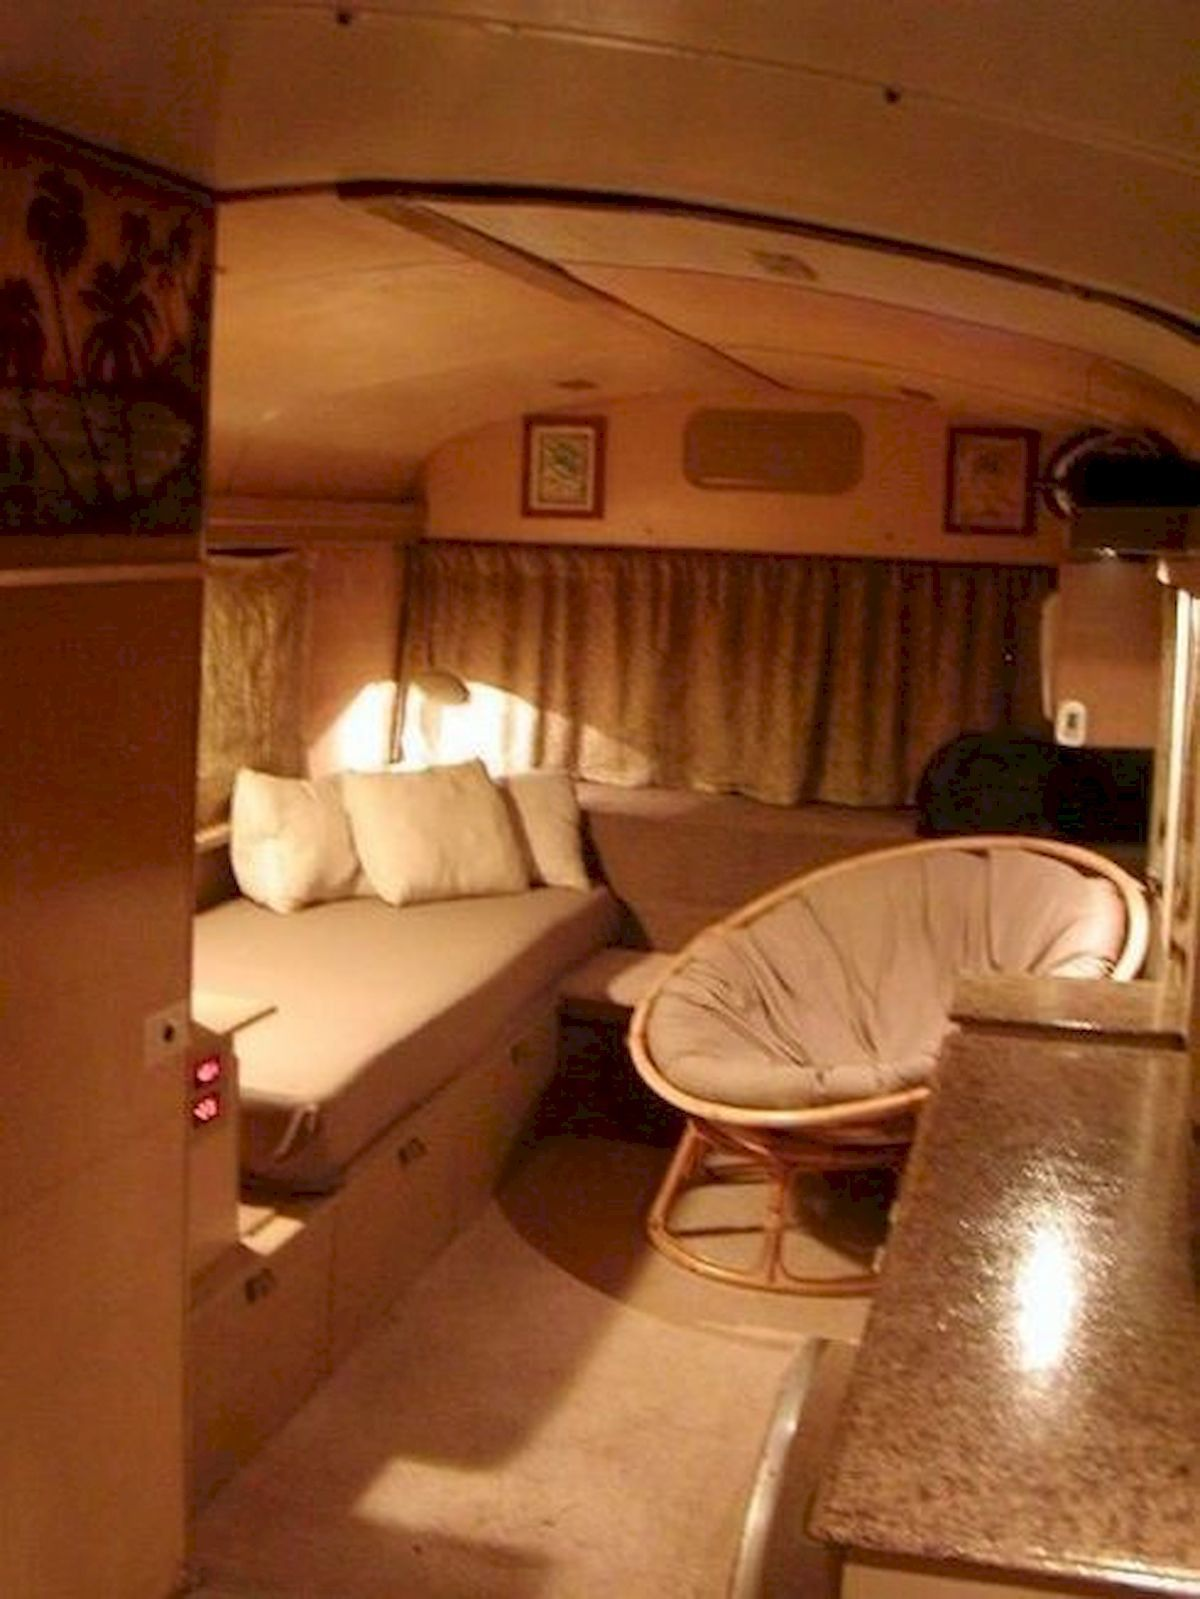 49 Awesome Bus Campers Interior Ideas (6